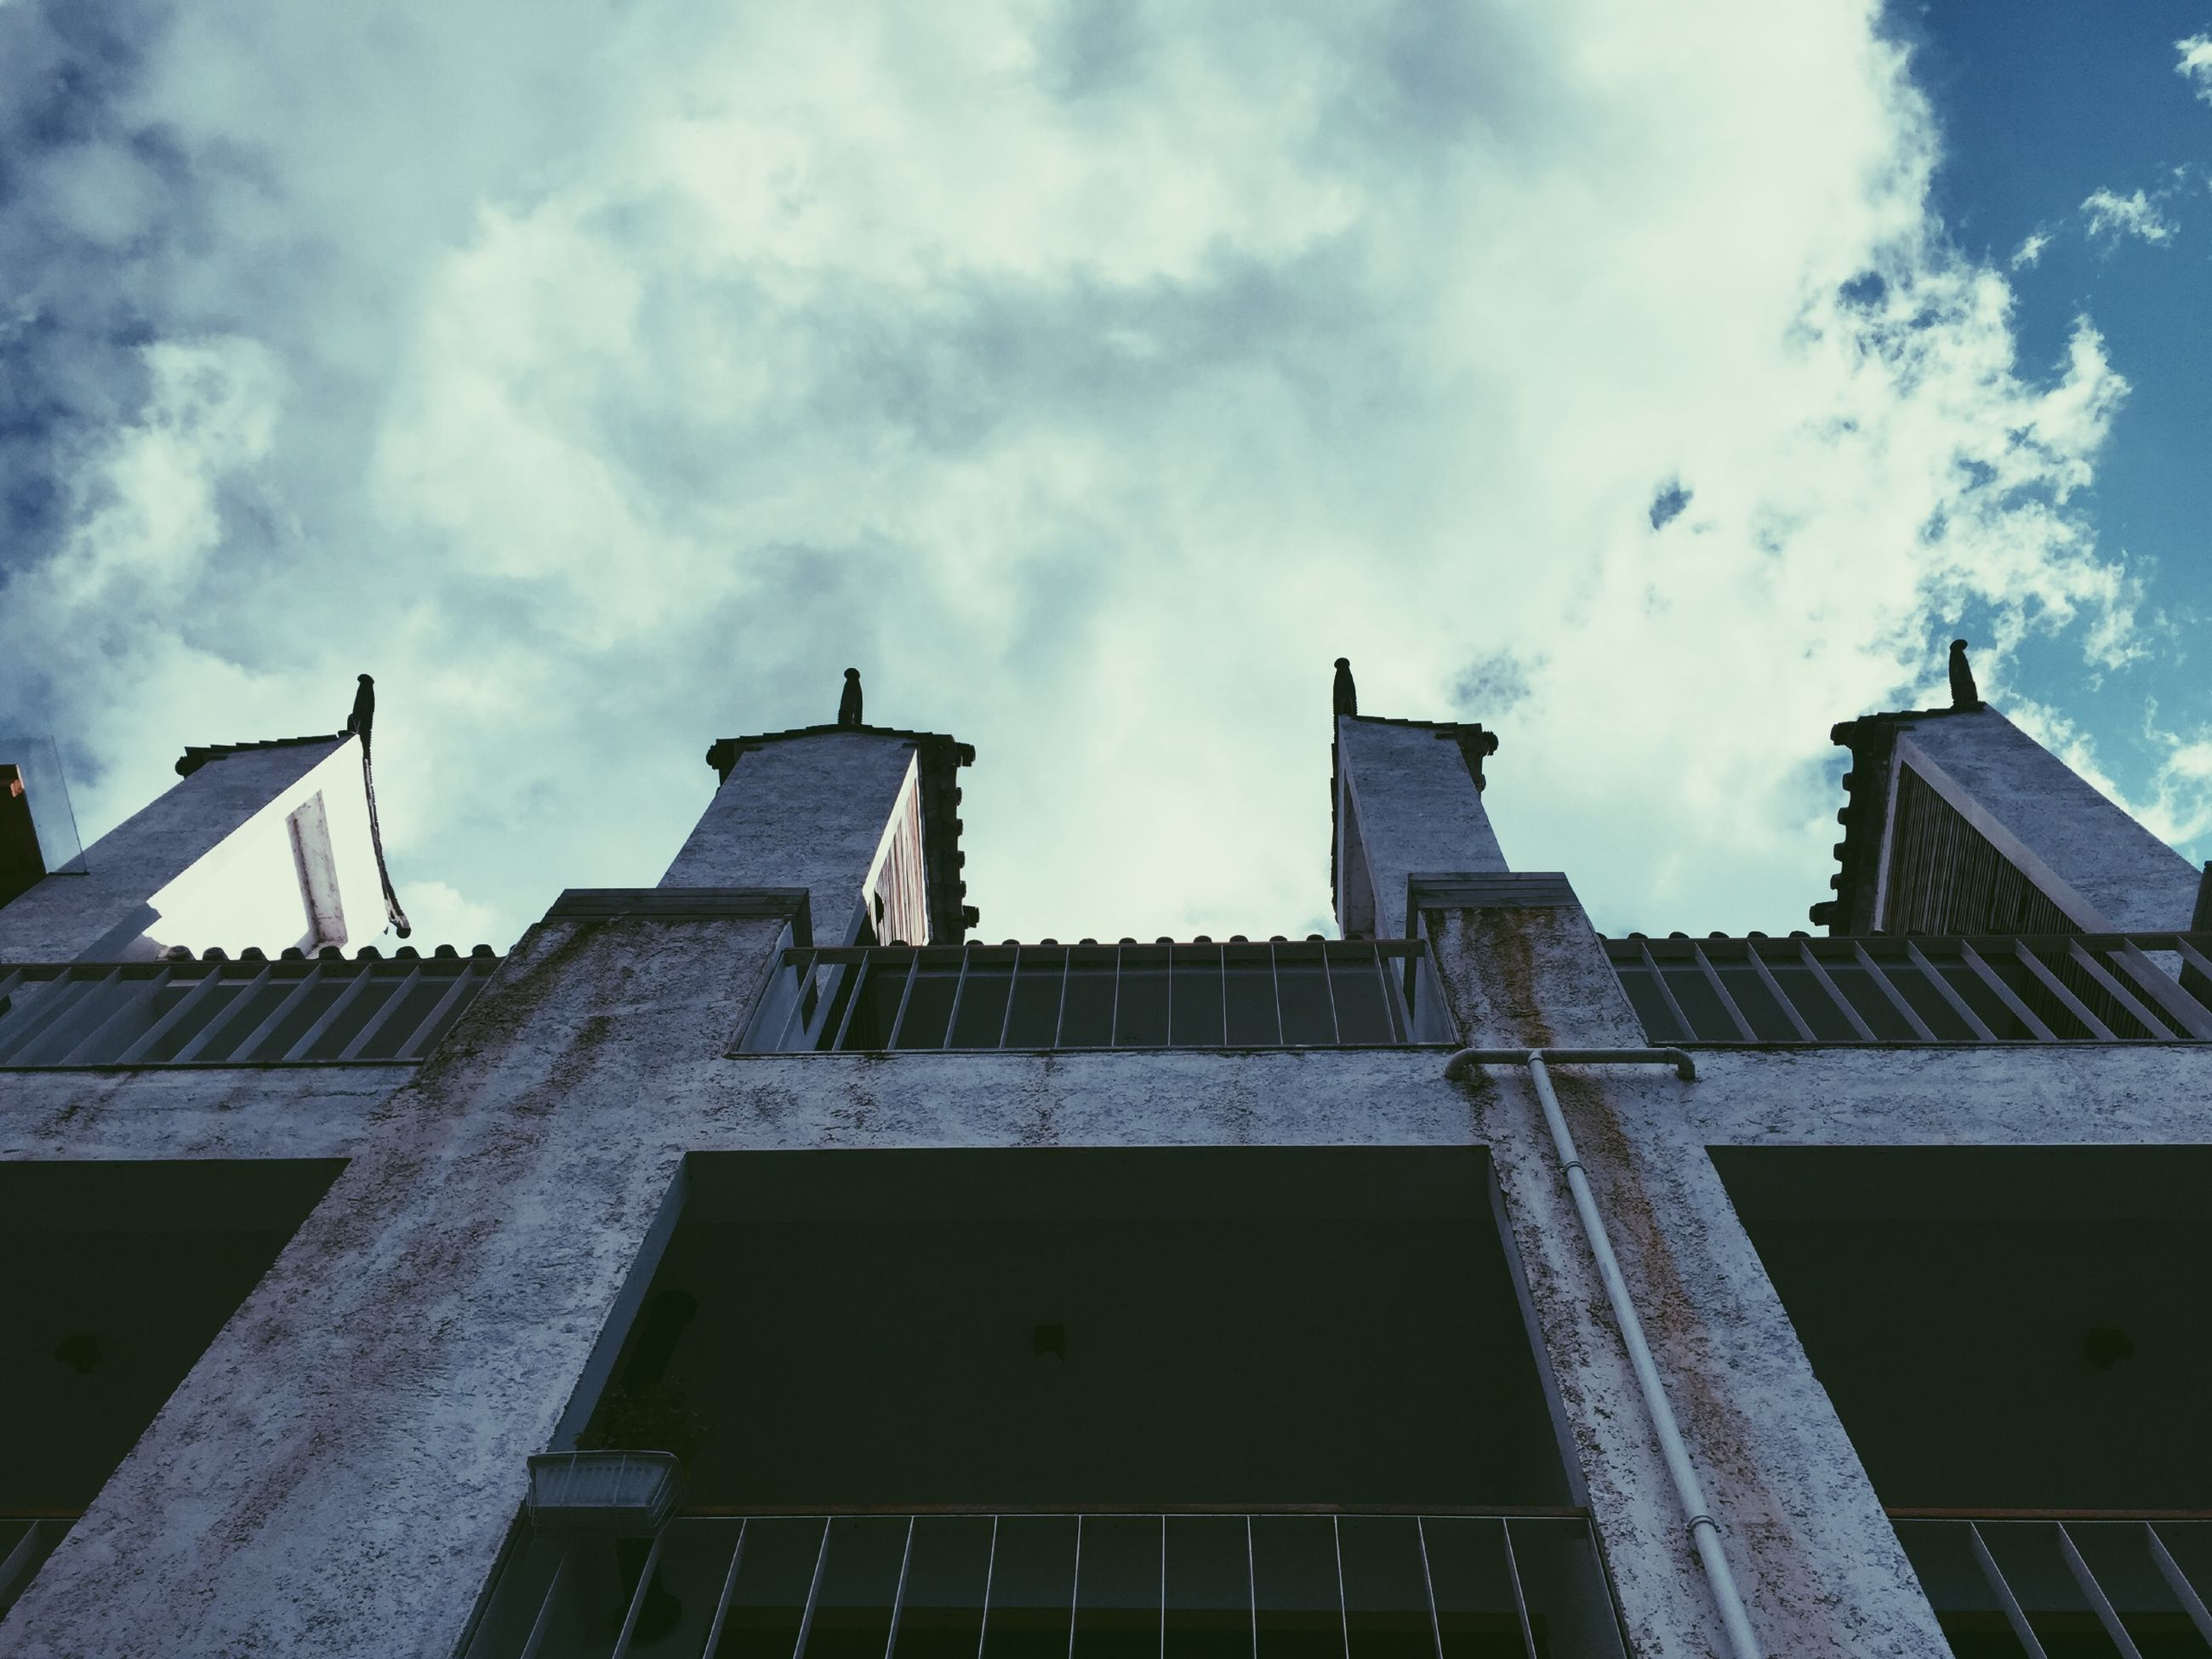 architecture, low angle view, built structure, building exterior, sky, cloud - sky, cloud, city, building, outdoors, day, no people, high section, cloudy, window, history, tower, sunlight, architectural feature, residential building